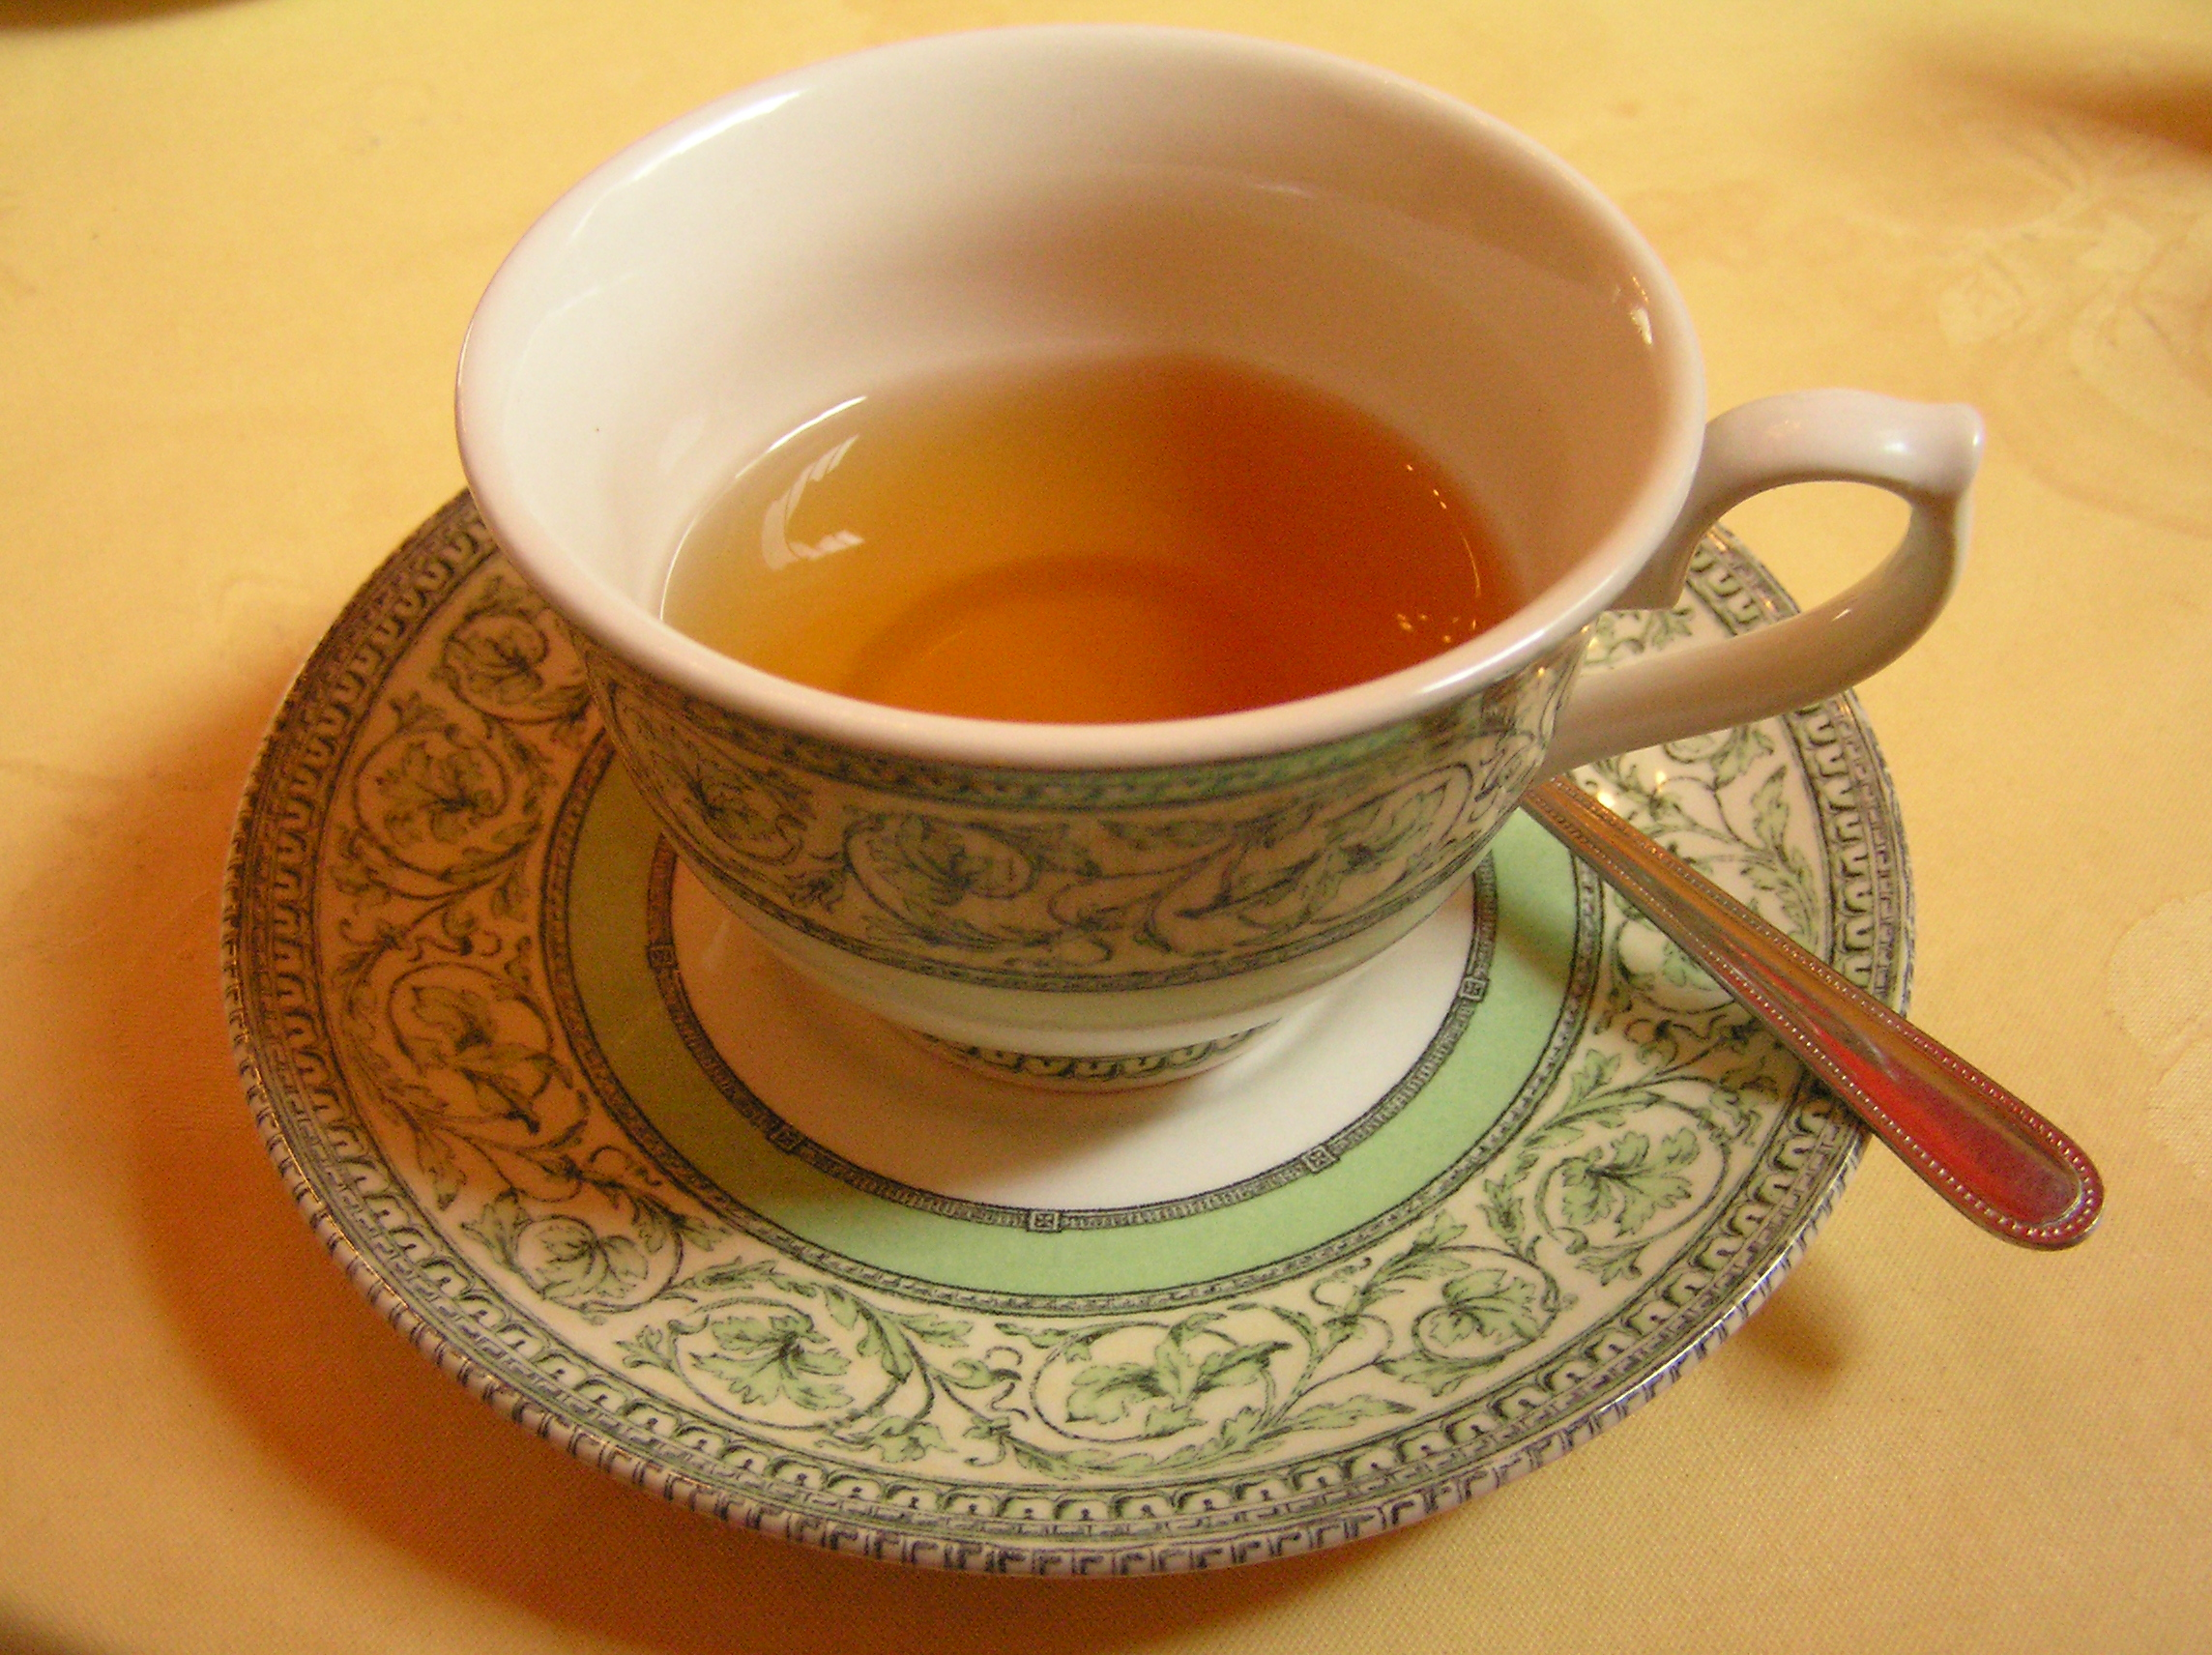 Archivo:Cup of tea, Scotland.jpg - Wikipedia, la enciclopedia libre